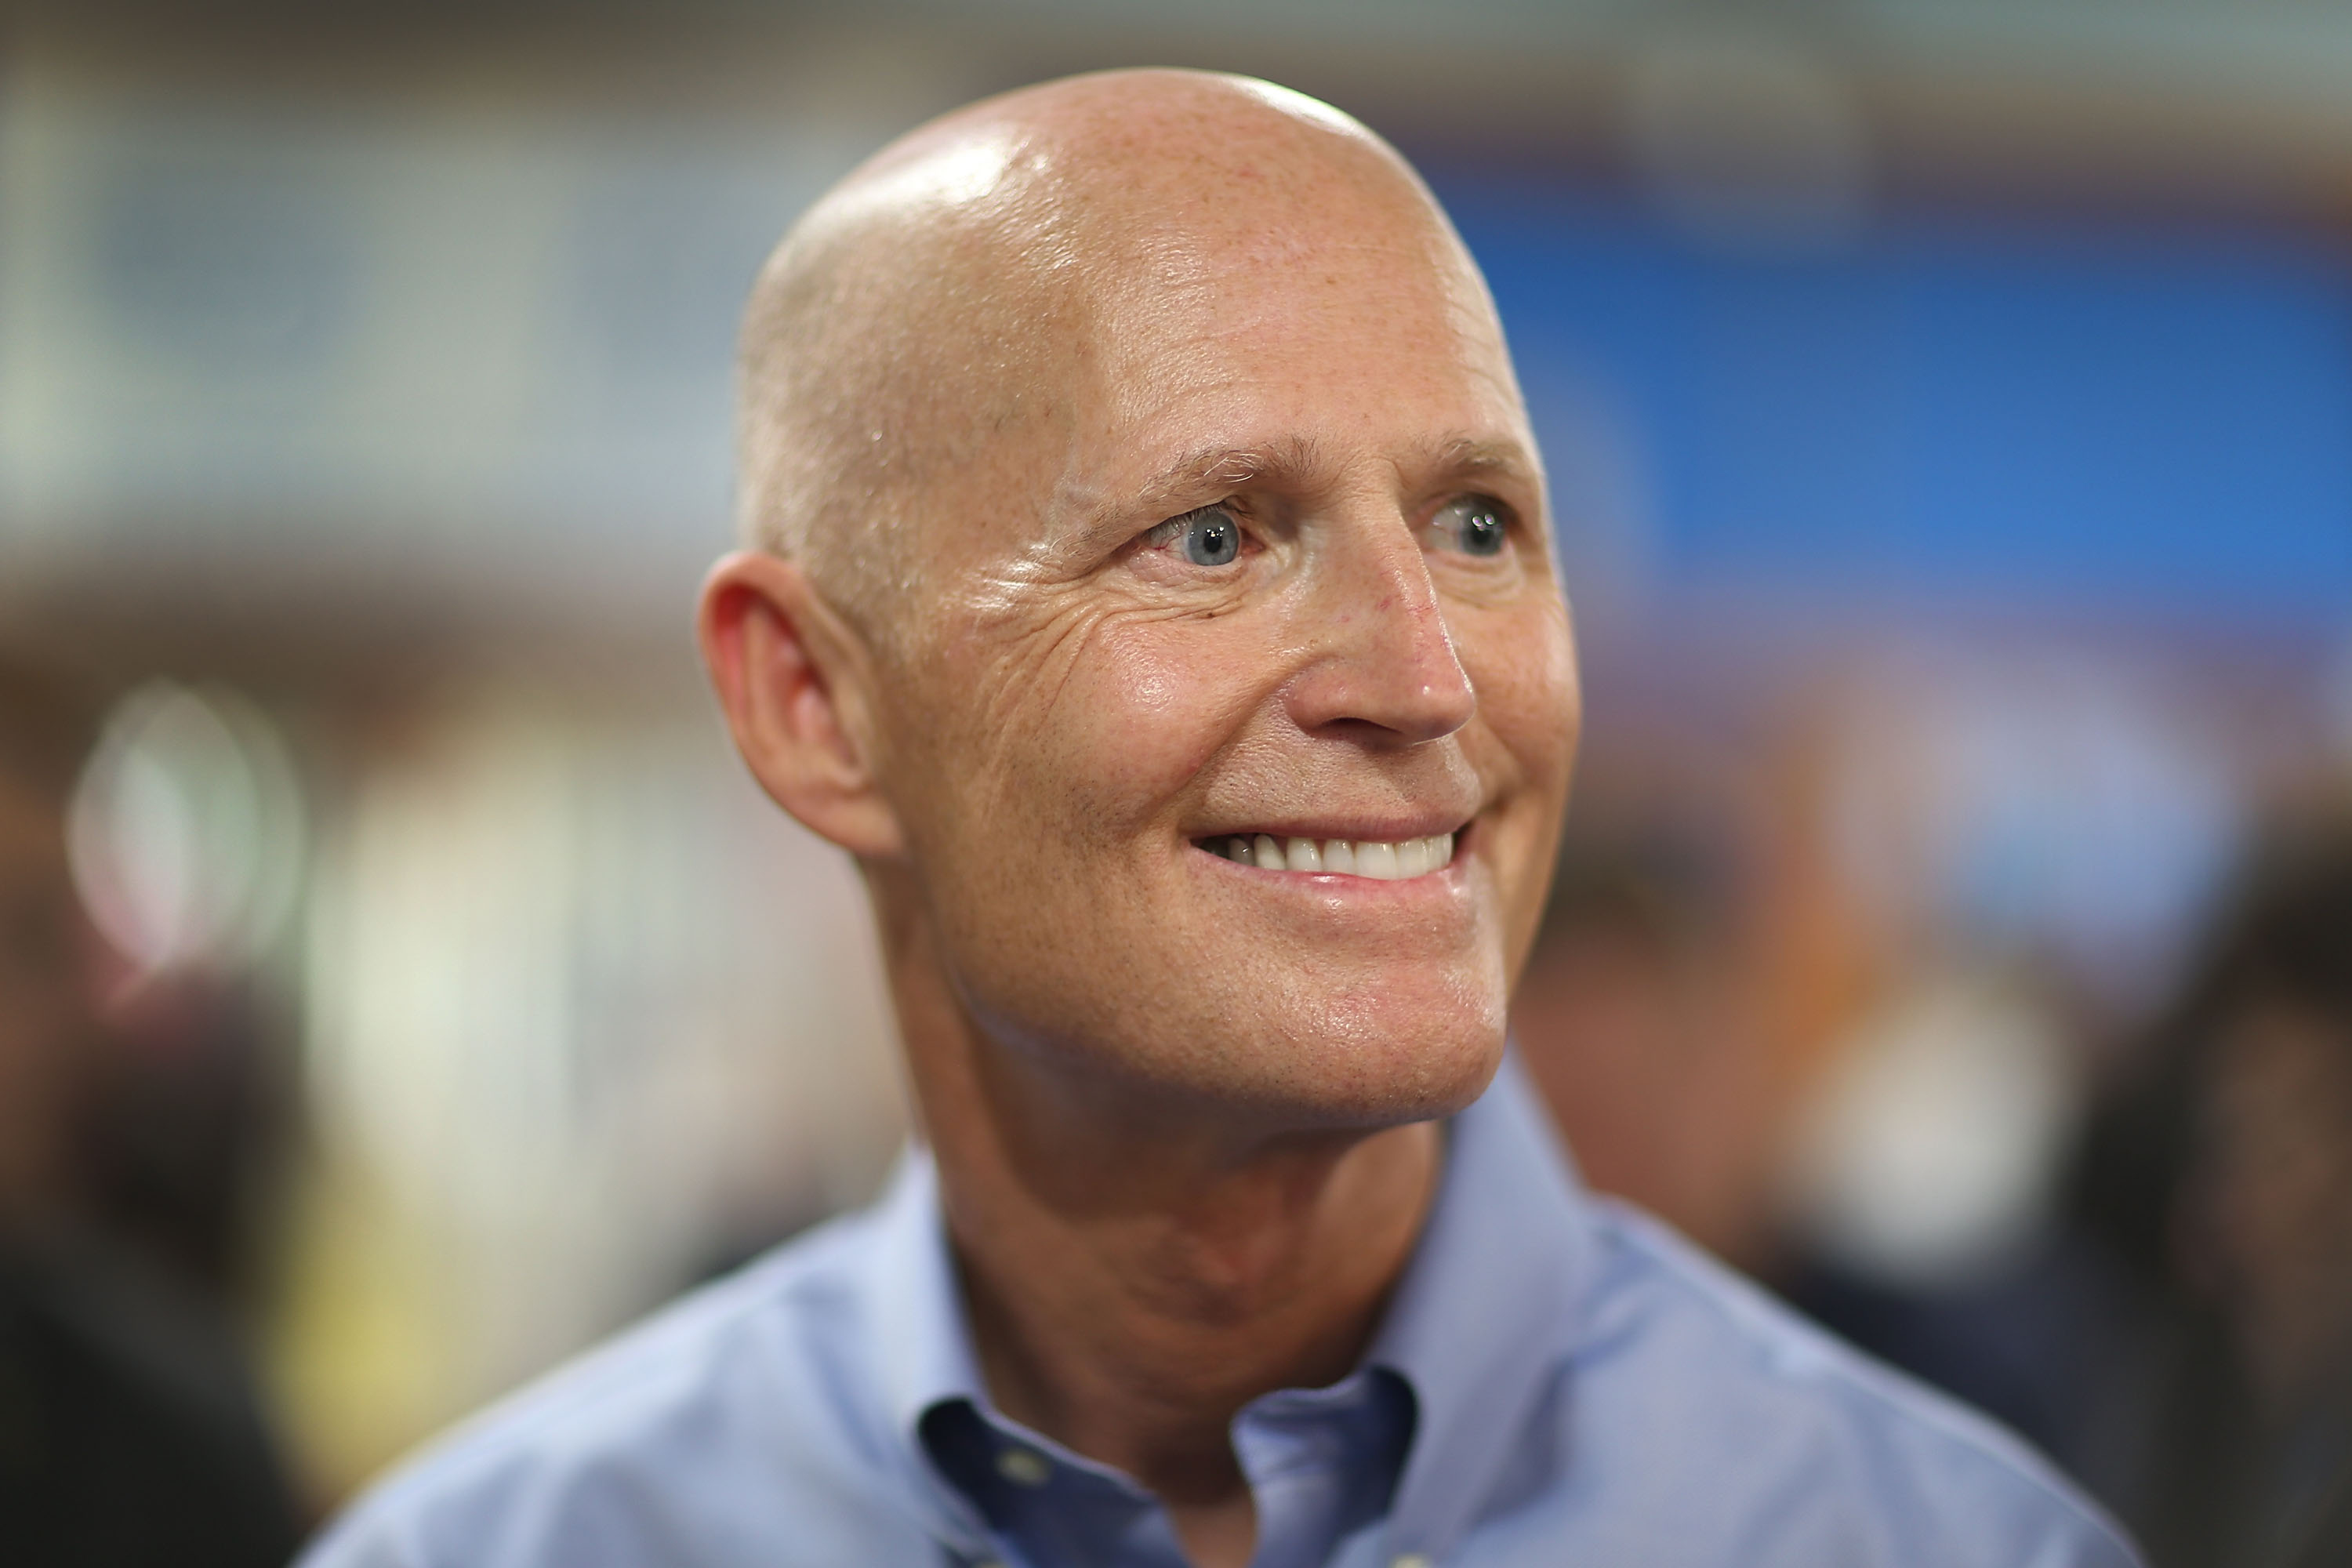 Florida Gov. Rick Scott as he visits the Marian Center which offers services for people with intellectual disabilities on July 13, 2015 in Miami Gardens, Fla.